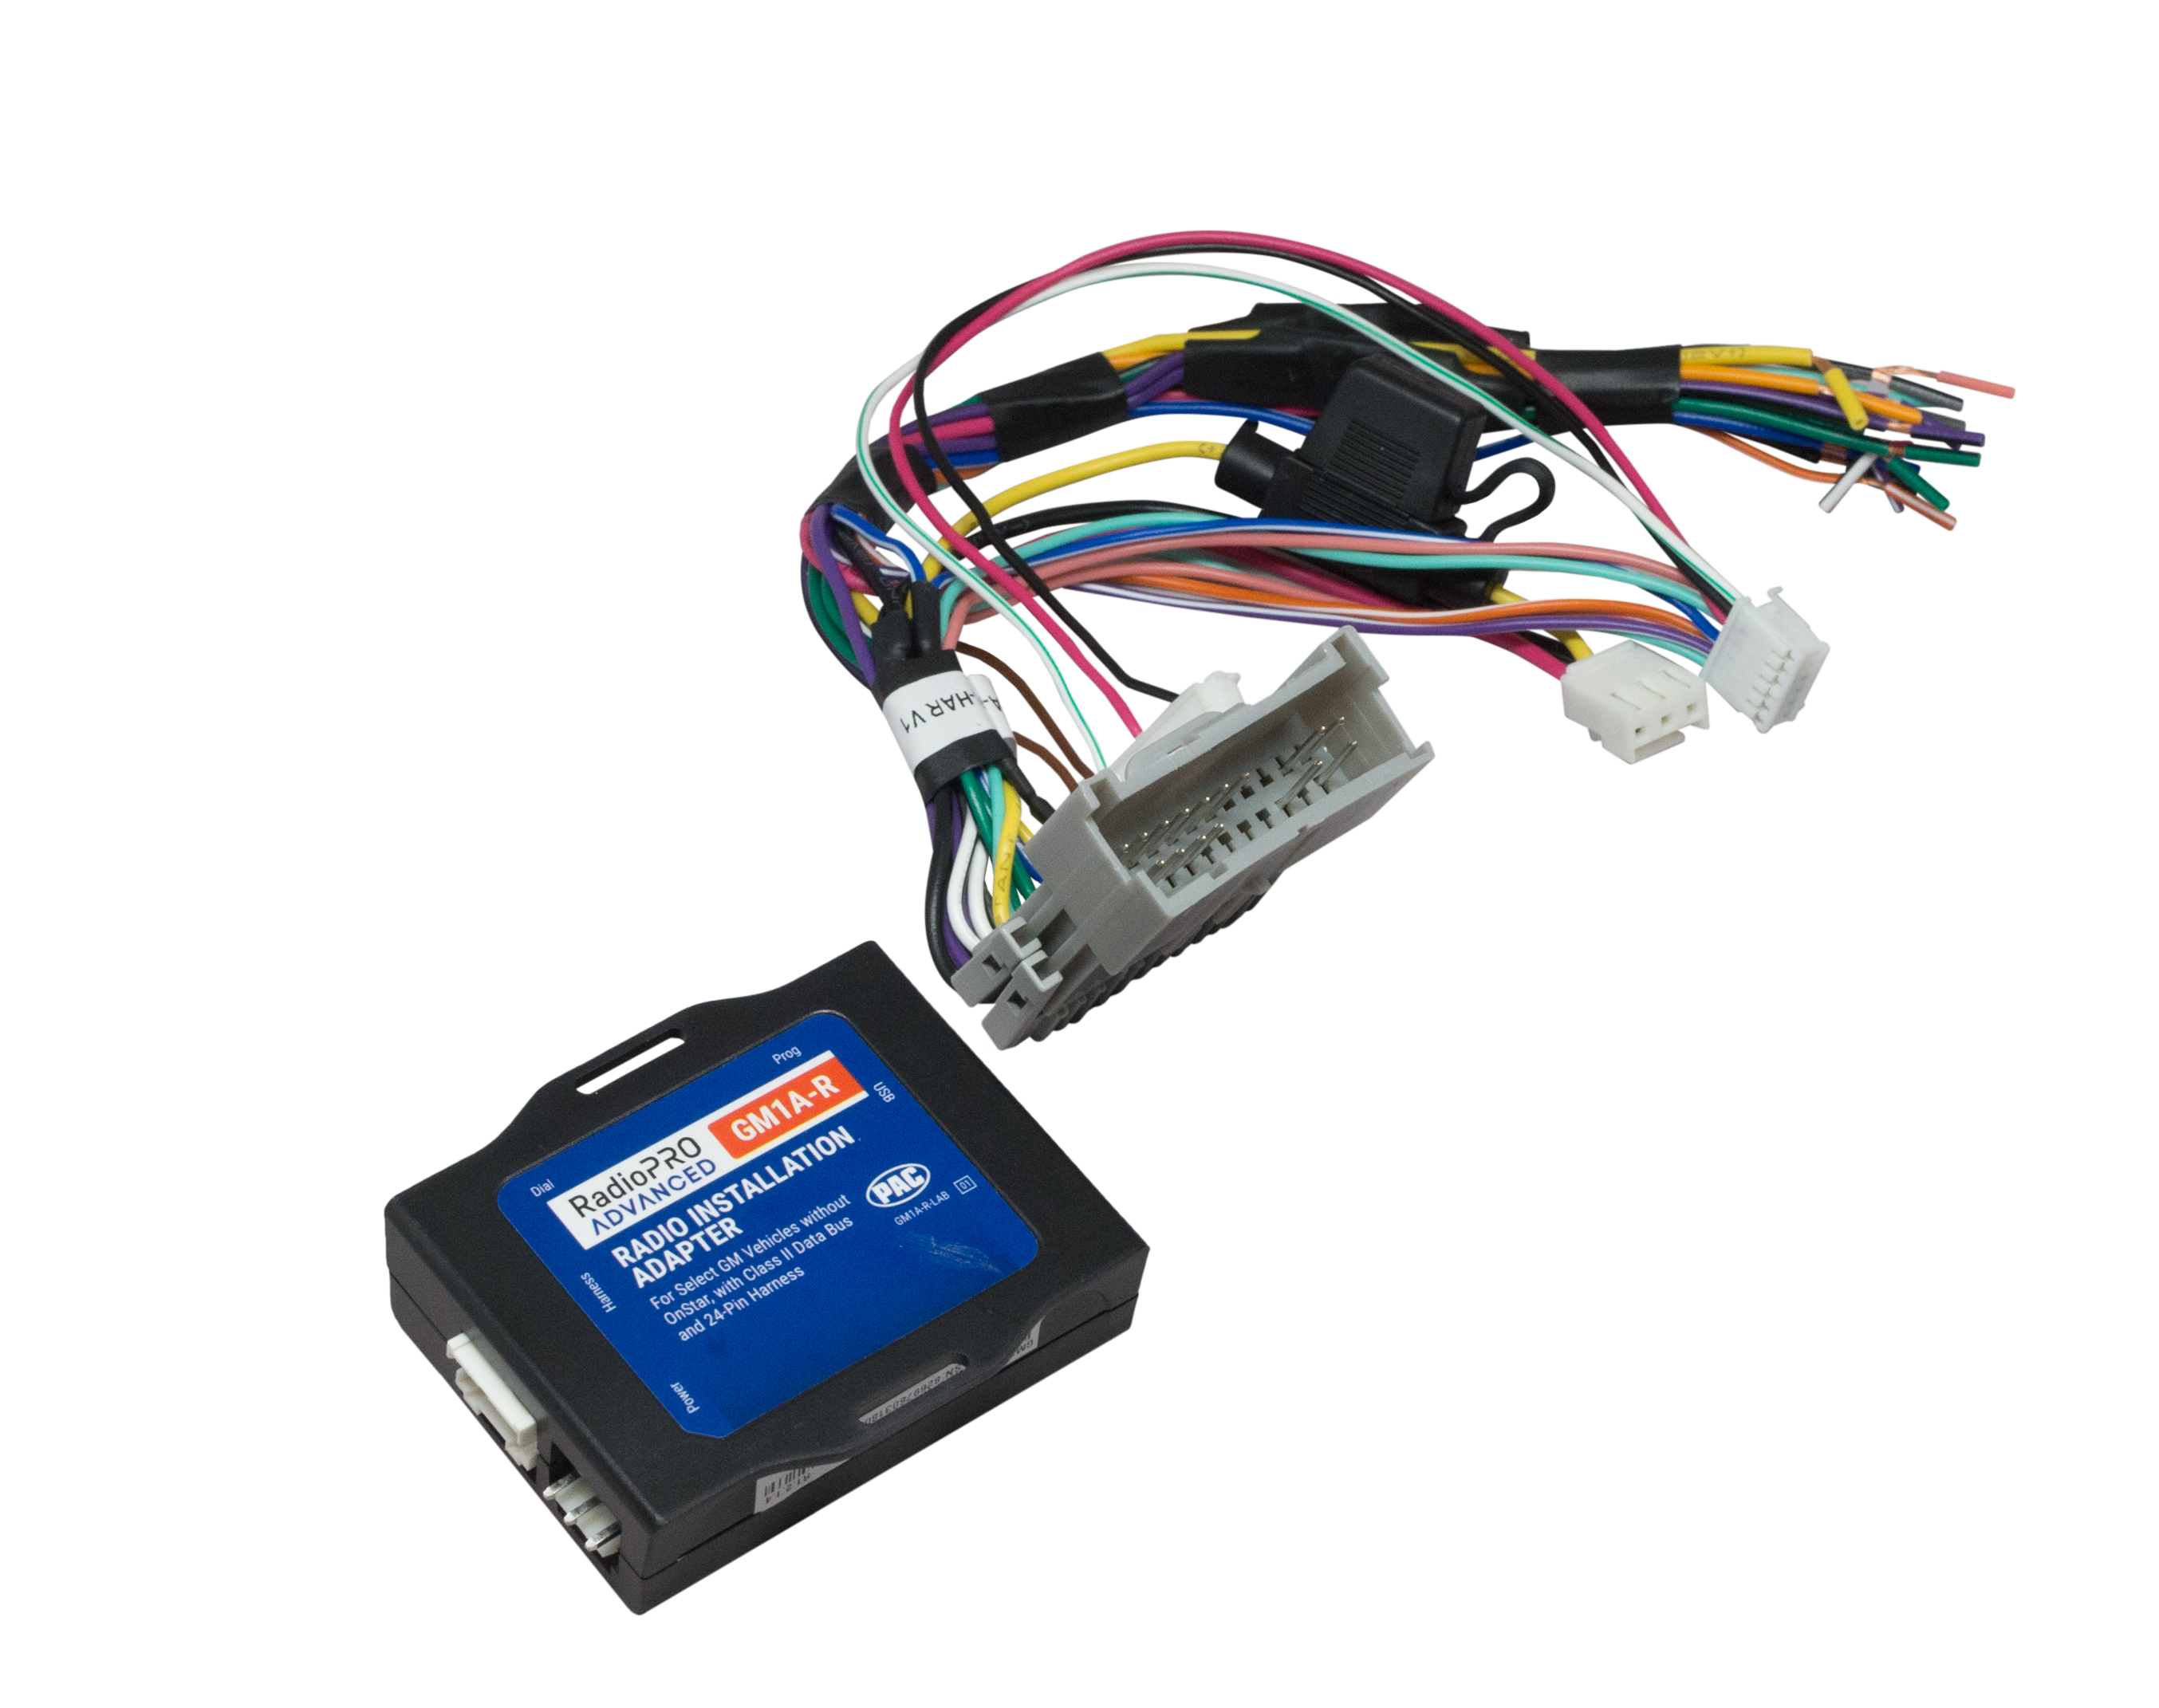 gm radio chime interface wiring diagram radiopro advanced interface for general motors vehicles with class  radiopro advanced interface for general